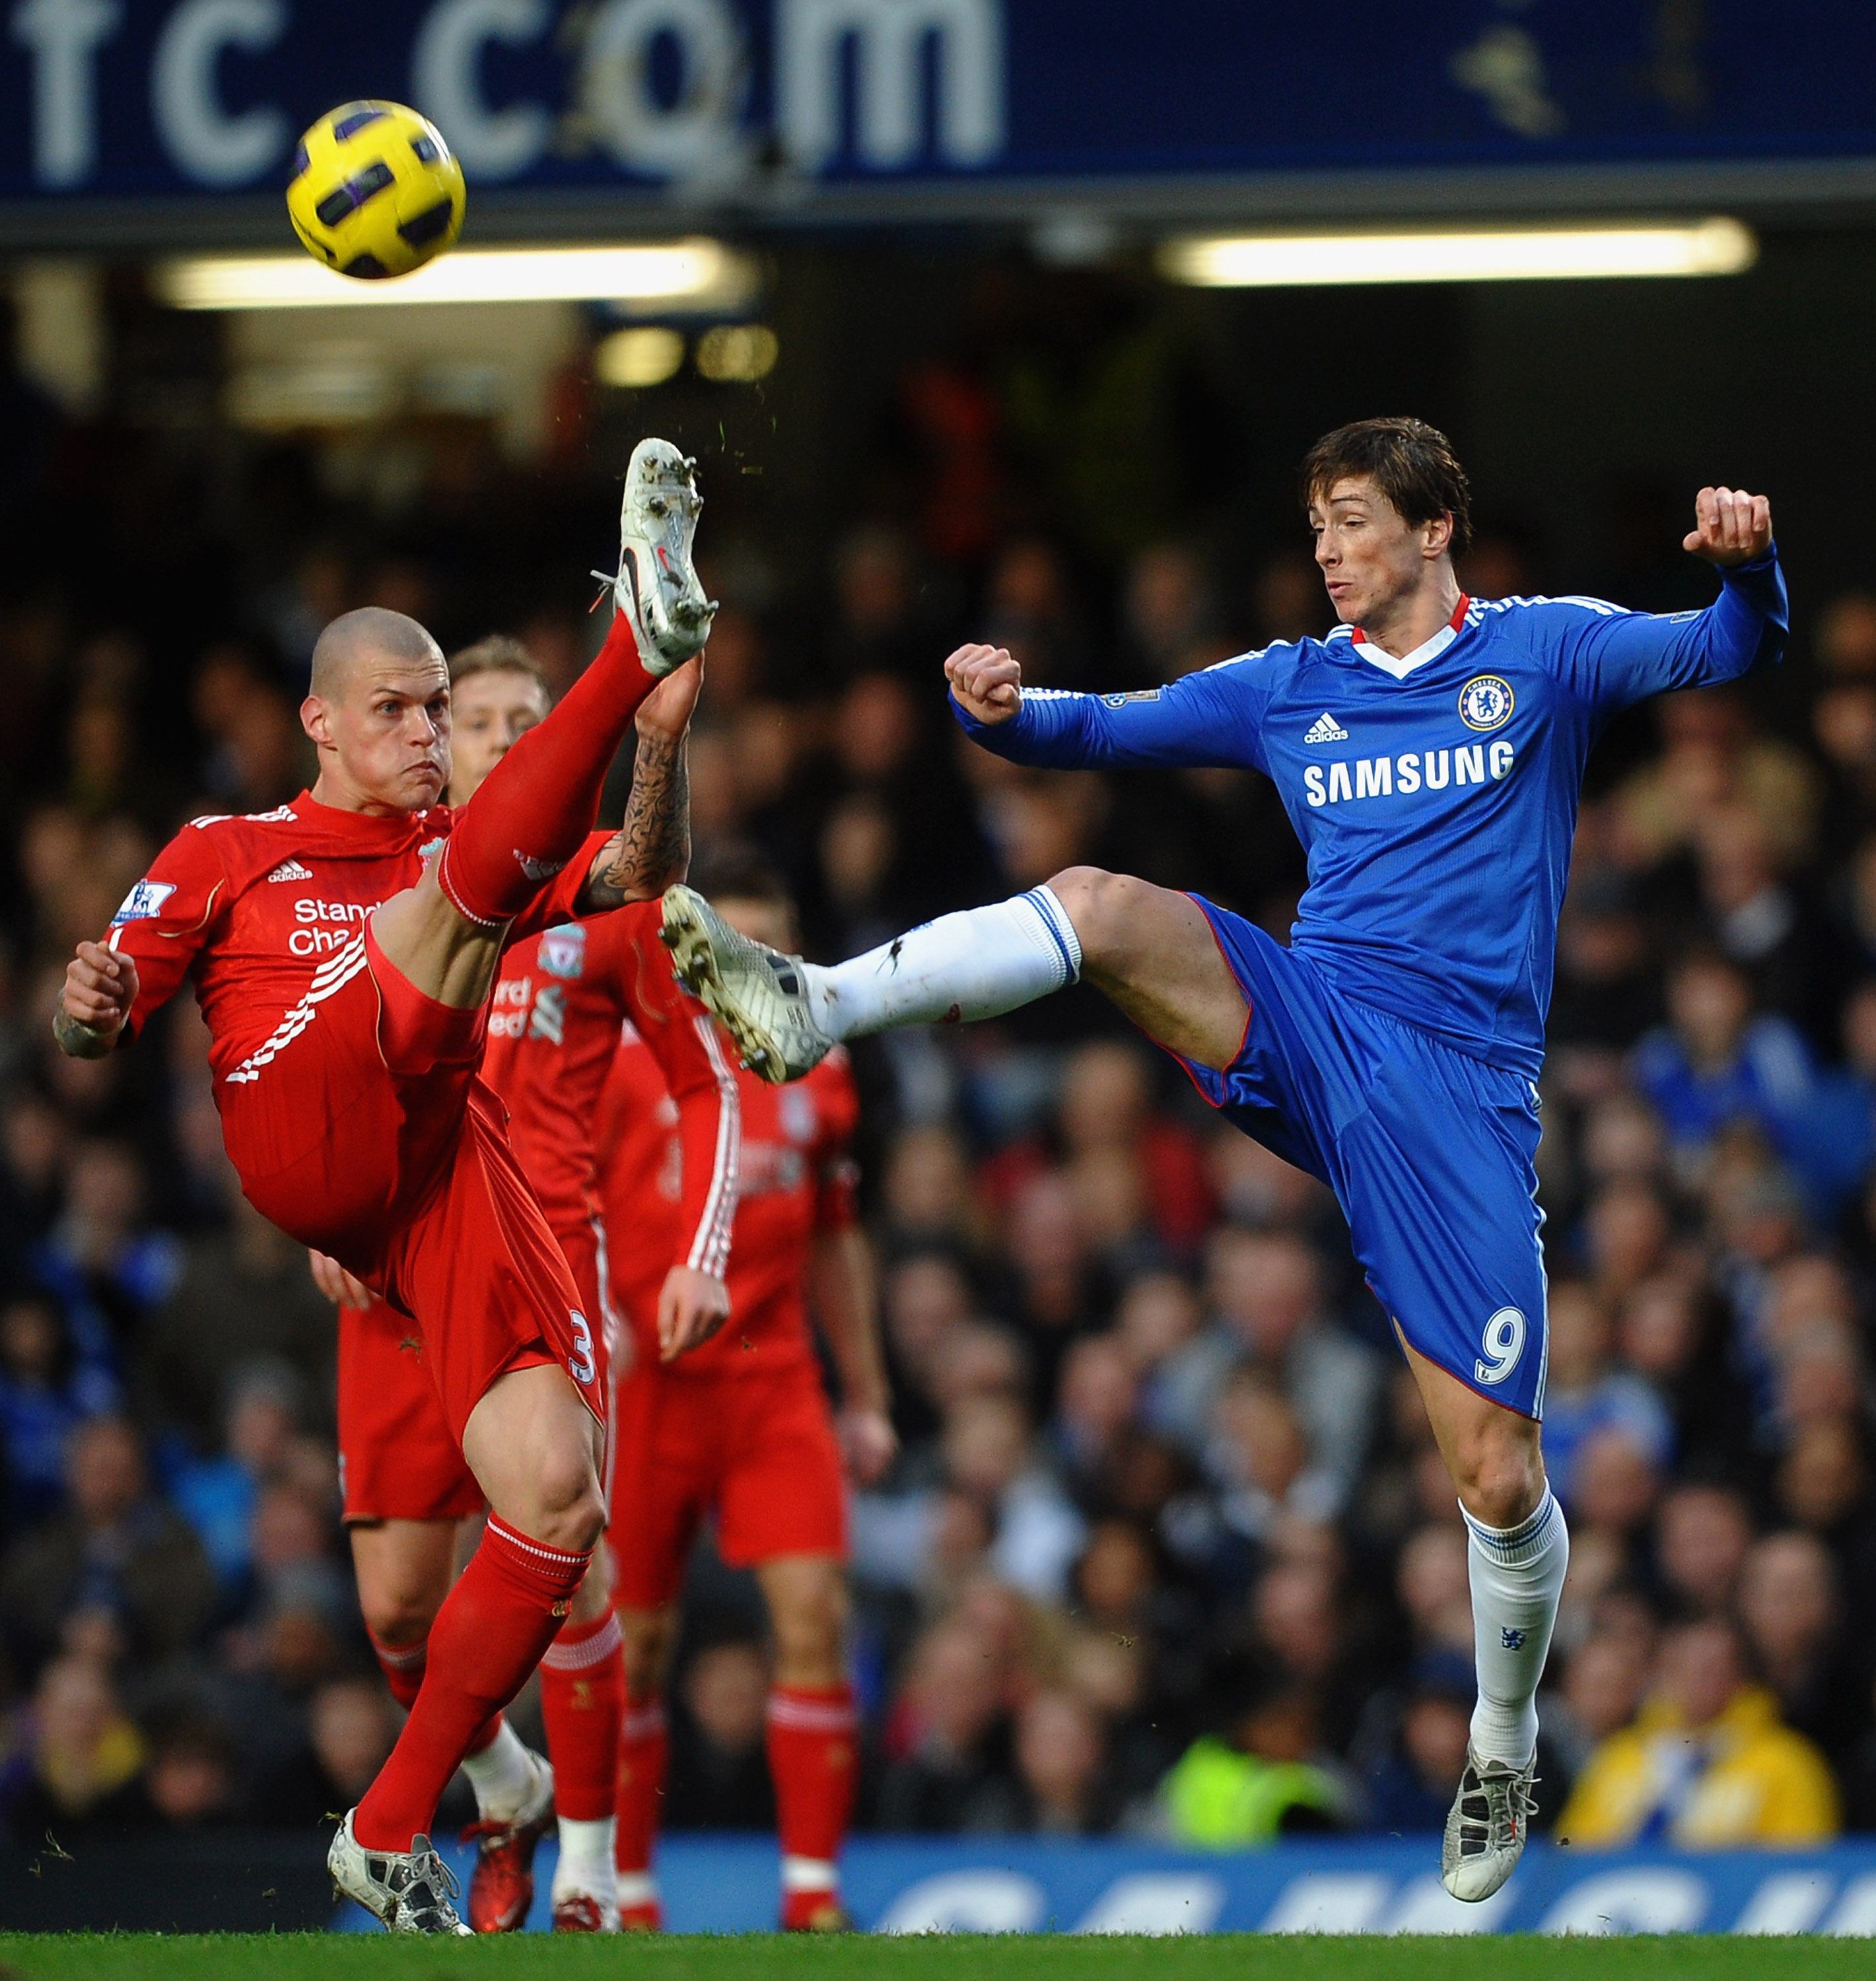 LONDON, ENGLAND - FEBRUARY 06:  Fernando Torres of Chelsea challenges Martin Skrtel of Liverpool during the Barclays Premier League match between Chelsea and Liverpool at Stamford Bridge on February 6, 2011 in London, England.  (Photo by Laurence Griffith